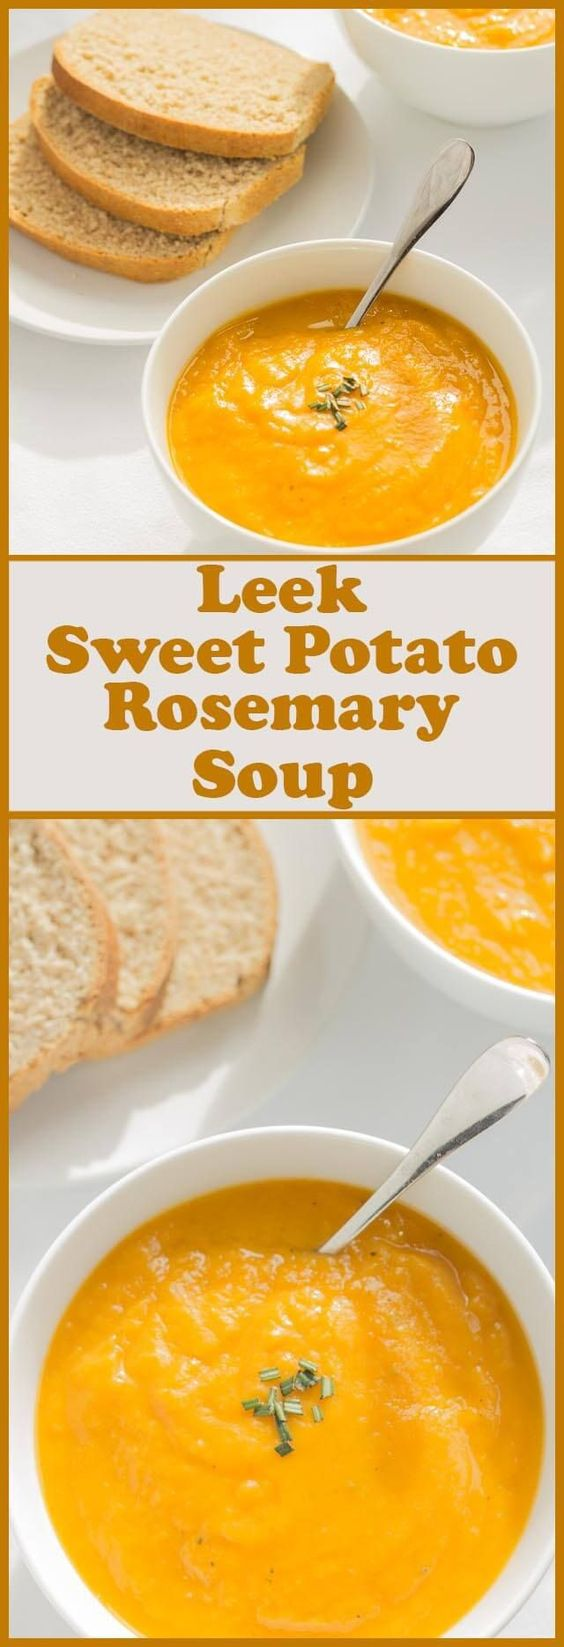 This leek, sweet potato and rosemary soup is addictive. The combination of flavours marinates together perfectly creating such a delicious creamy comfort soup. Not only that, it's really simple and quick to make too, in less than one hour!